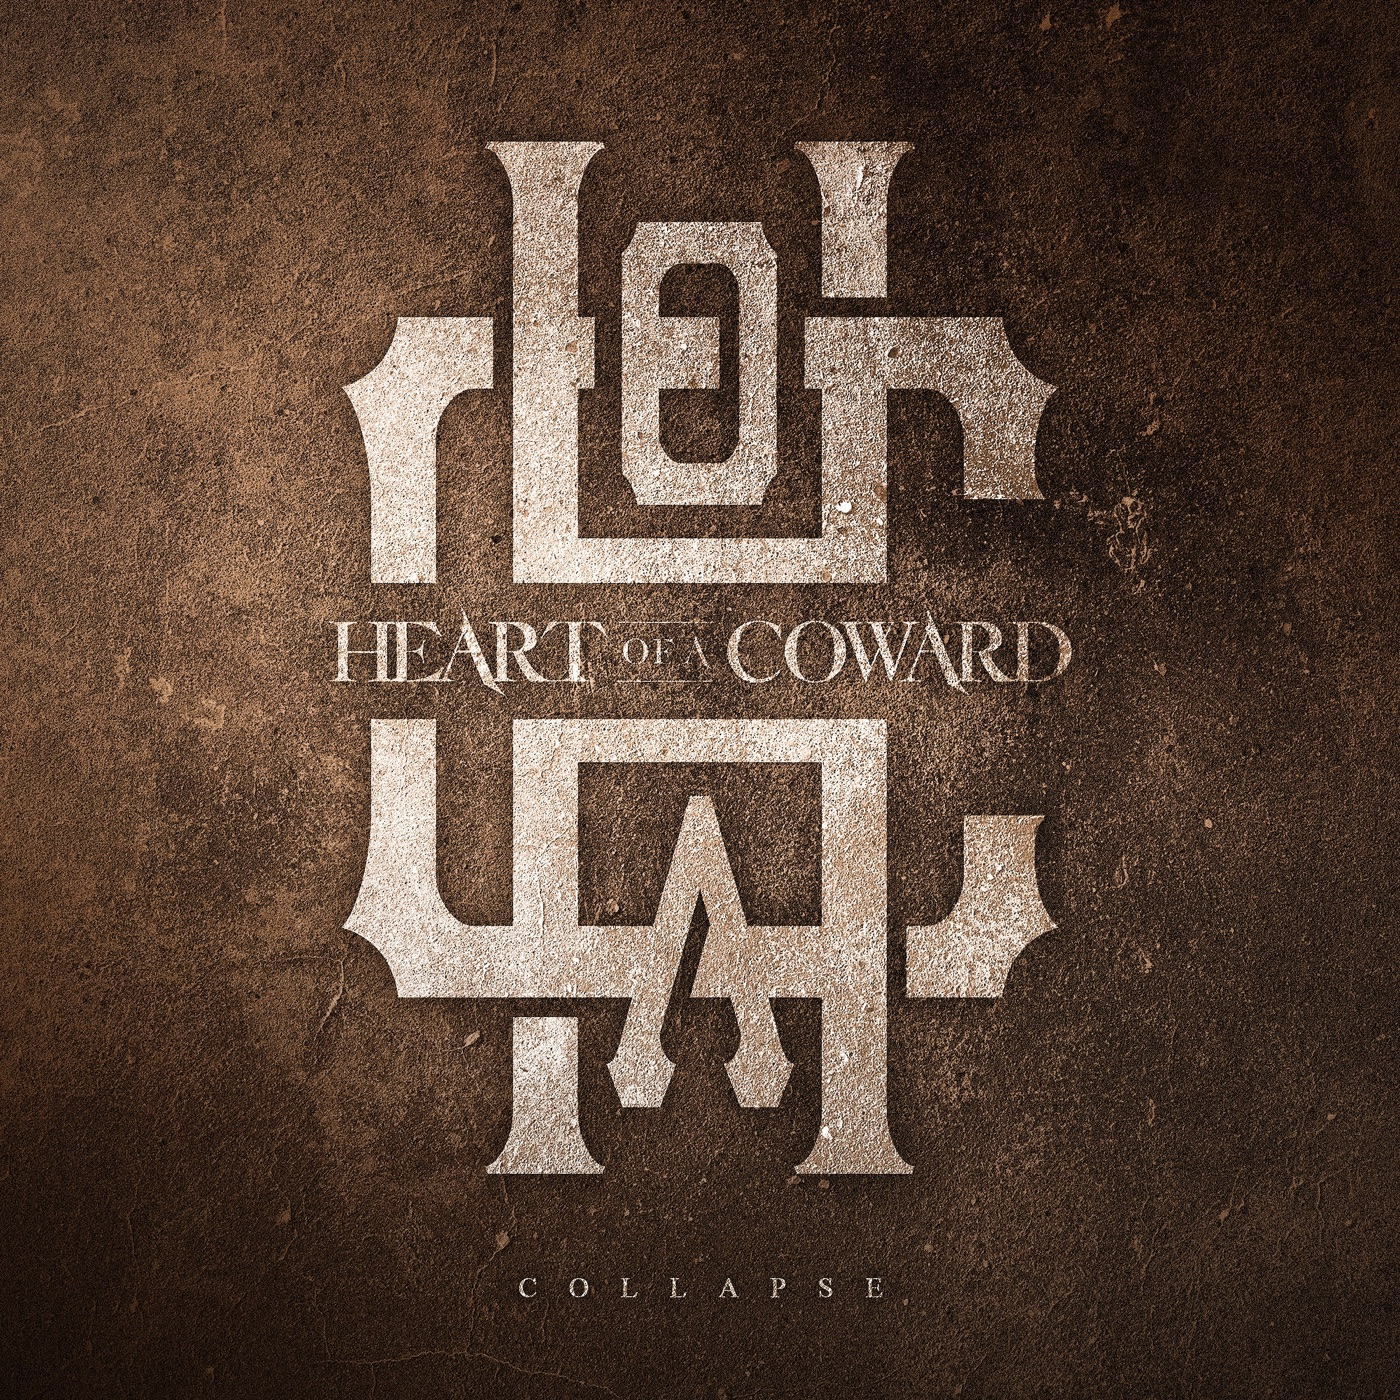 Heart of a coward skeletal i mourning repairs youtube.